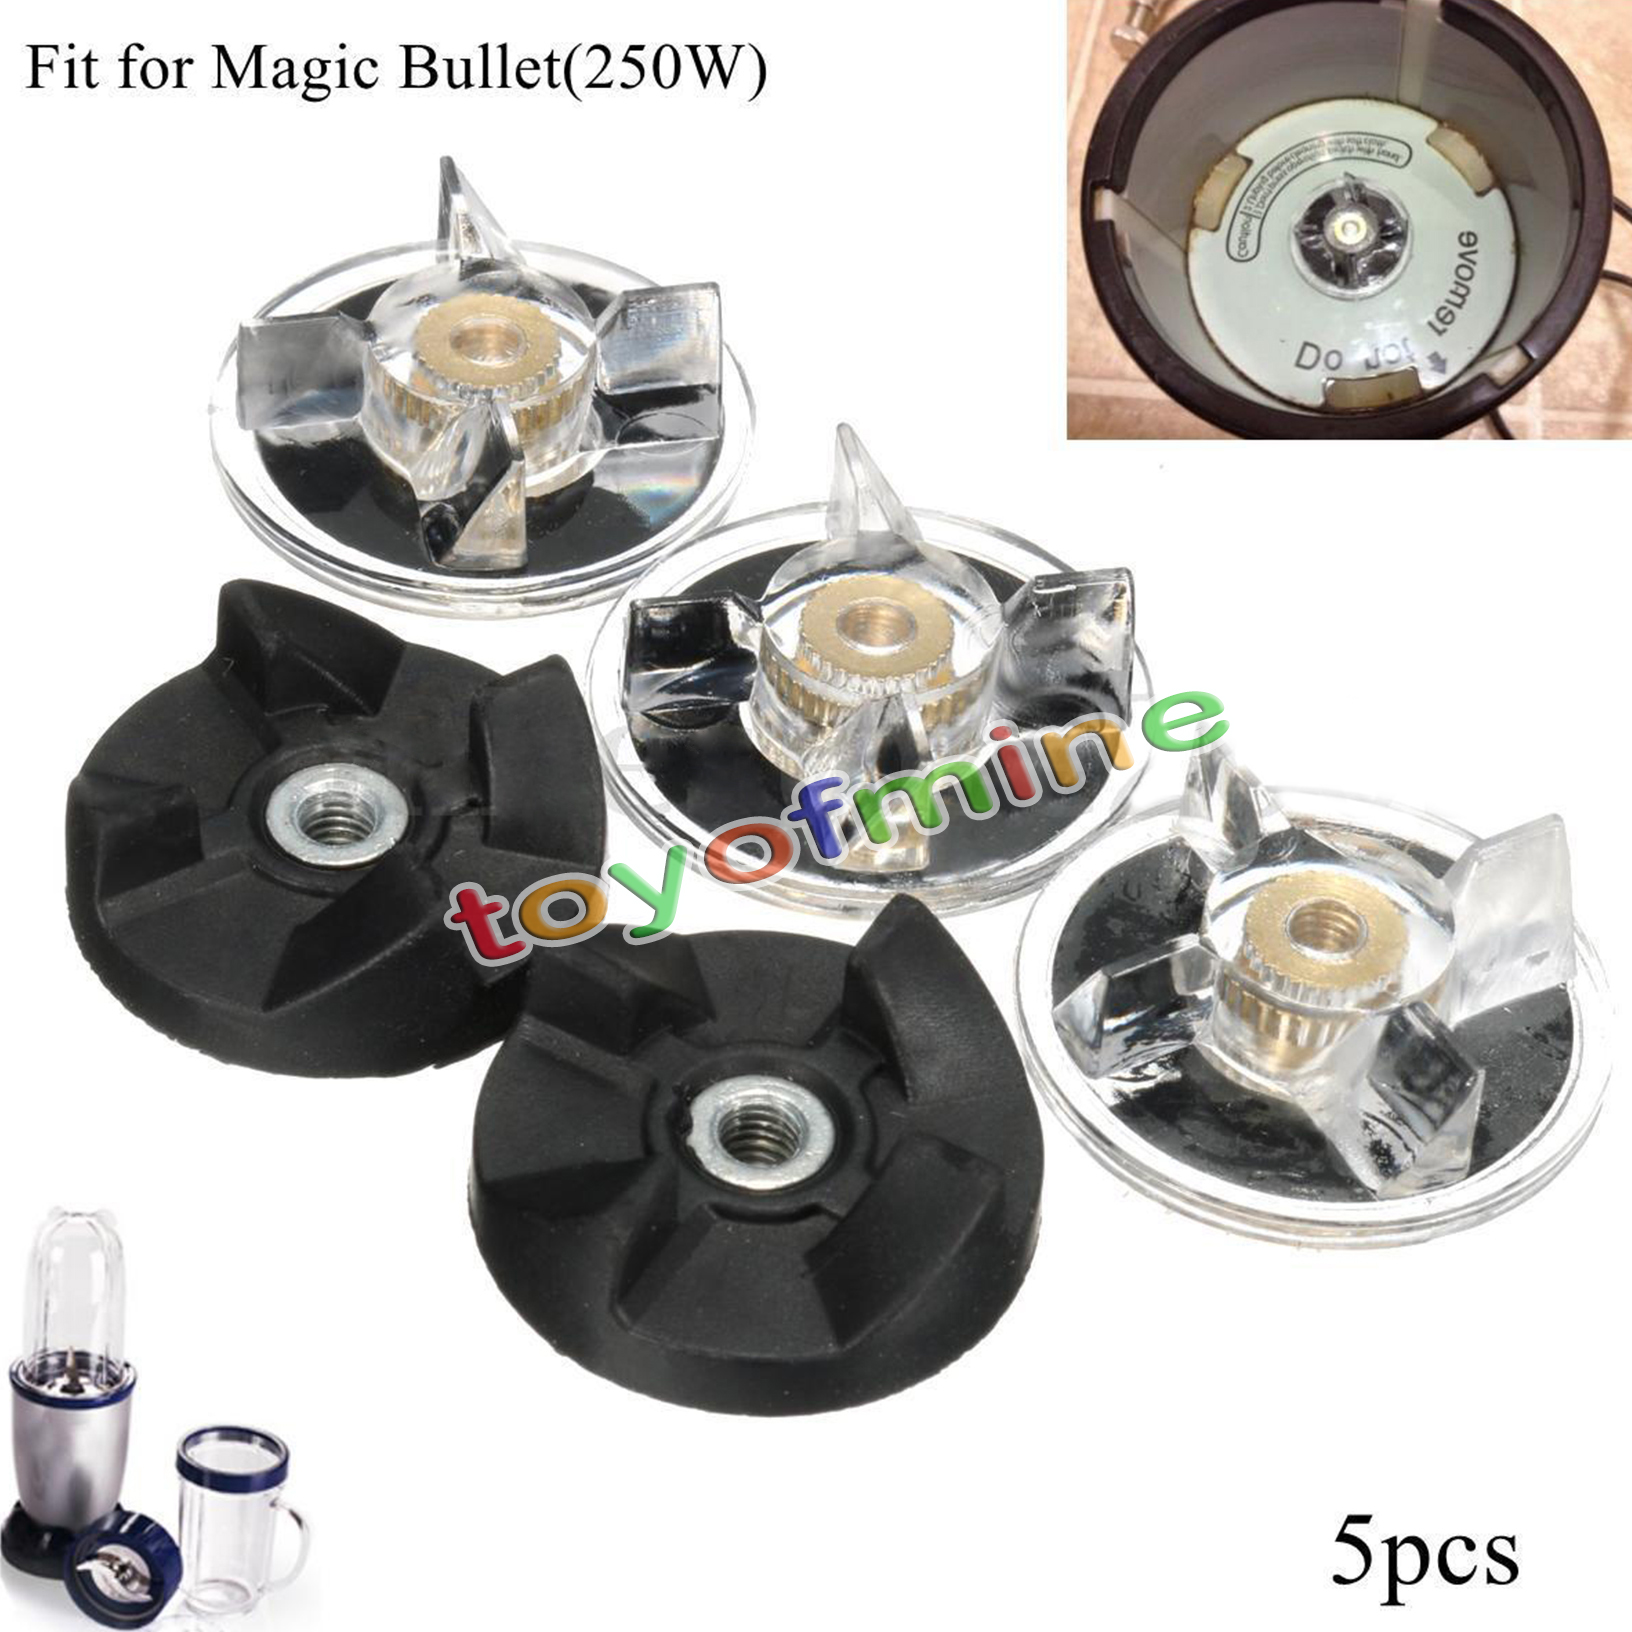 3 Plastic Gear Base & 2 Rubber Replacement For Magic